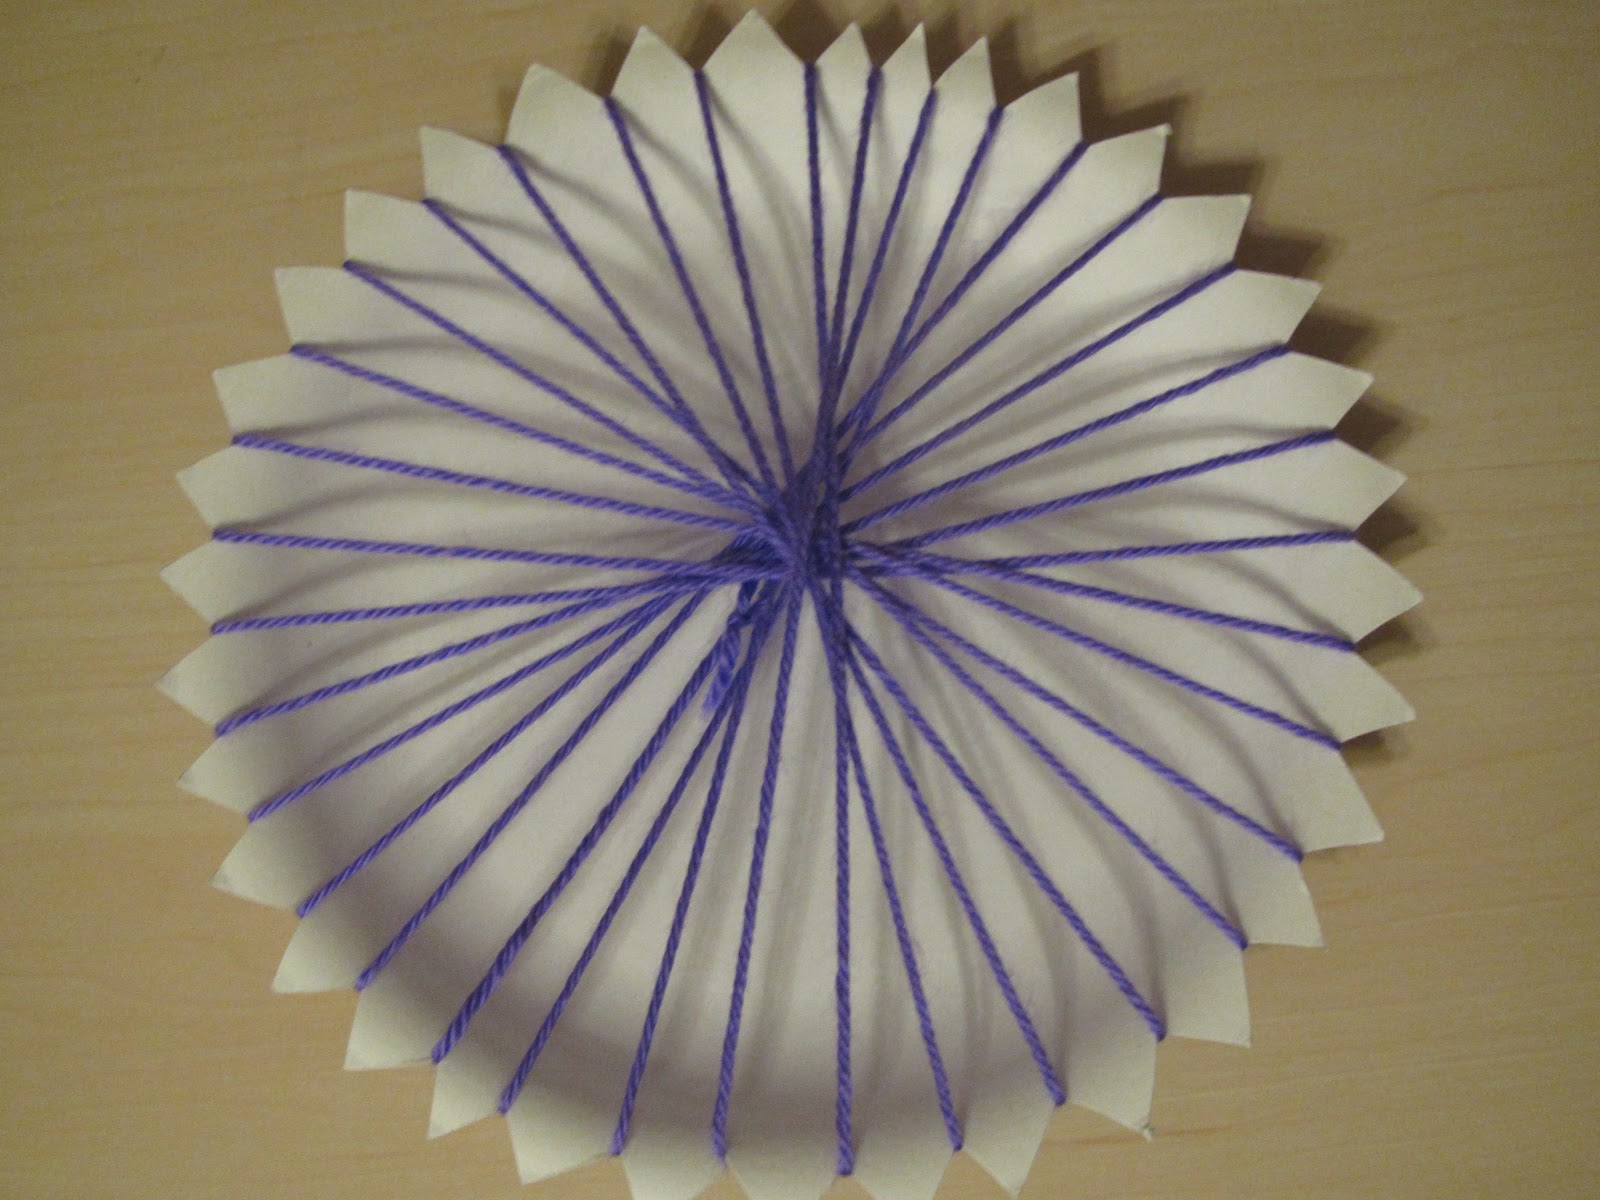 Paper Plate Weaving Step by Step & Paper Plate Weaving Step by Step - Lessons With Laughter